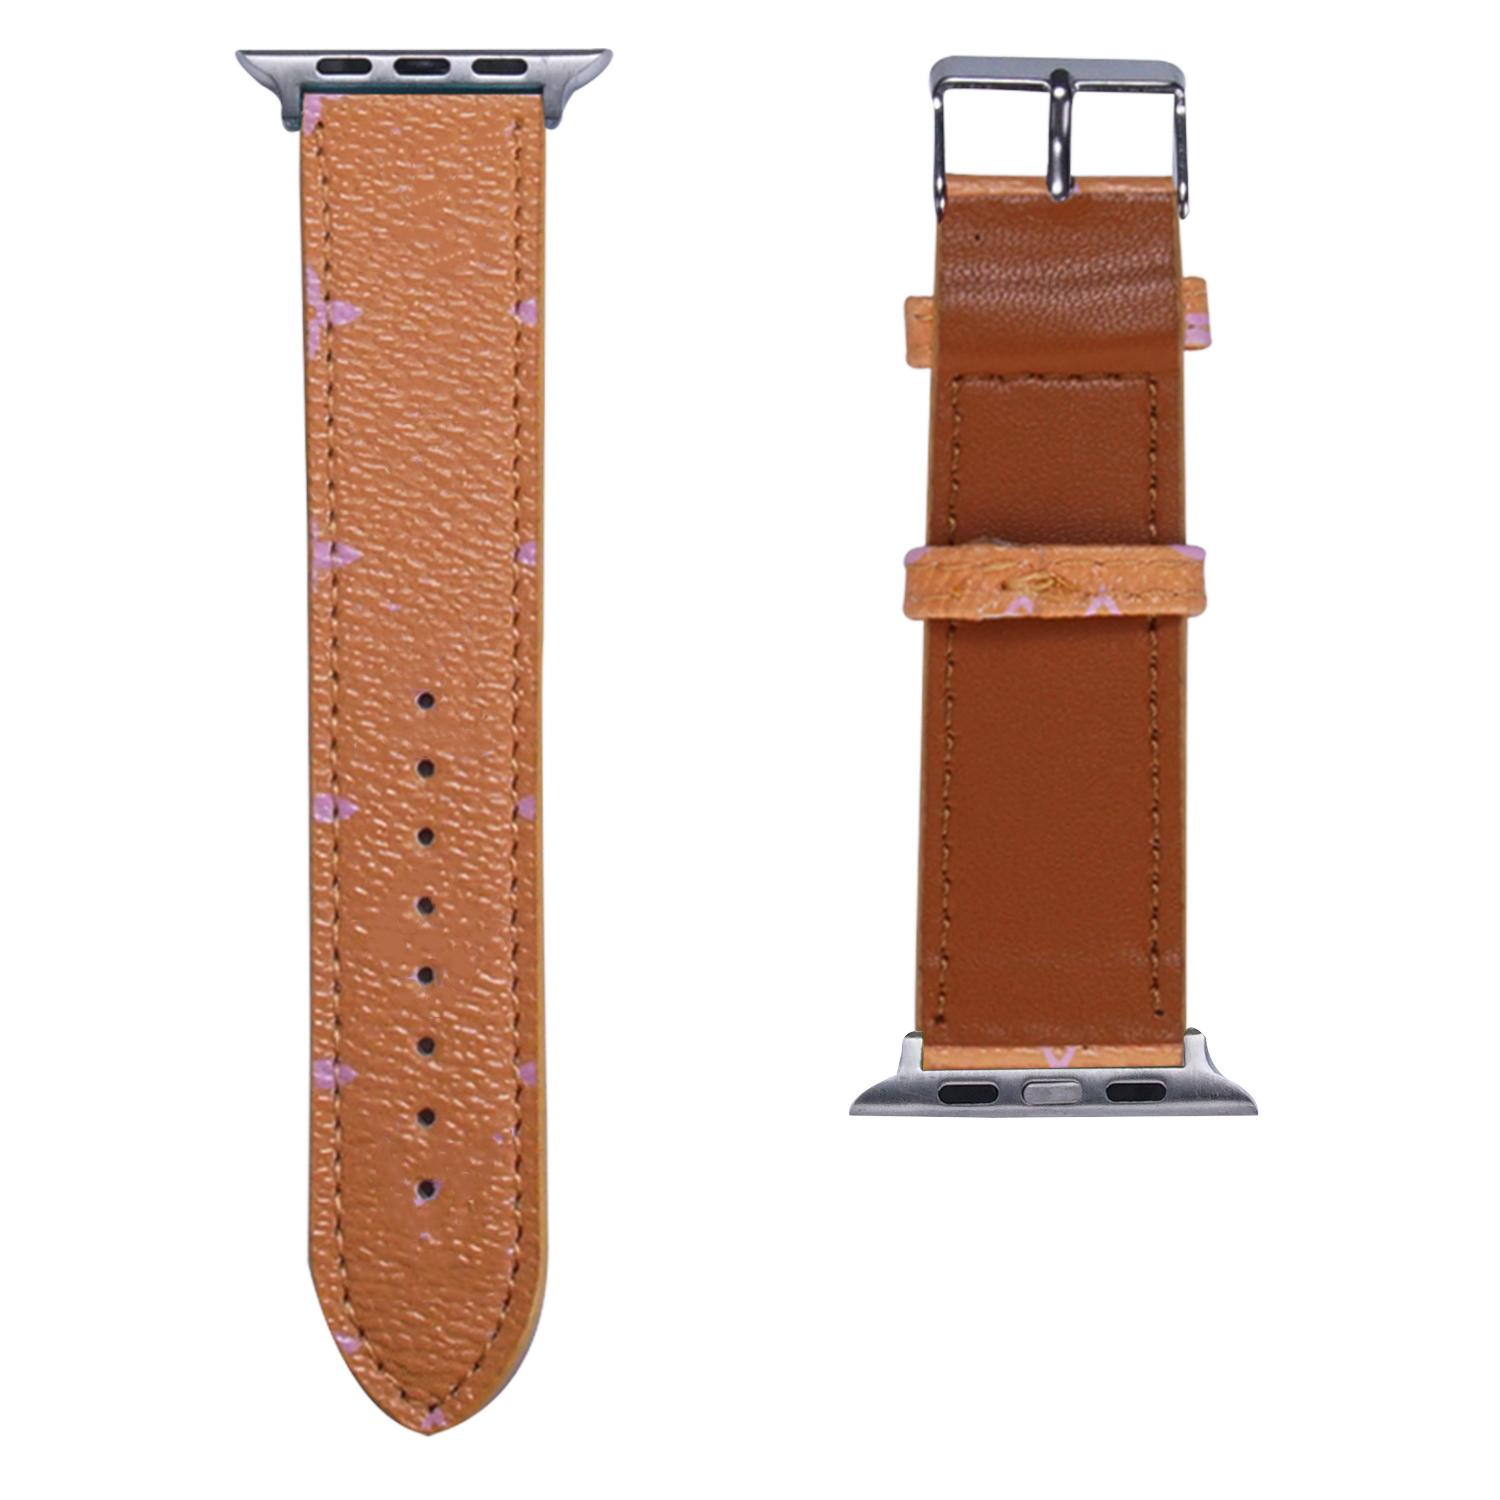 Suitable for Apple Watch strap 38mm 40mm 42mm 44mm high quality designer fashion trend Apple Watch strap